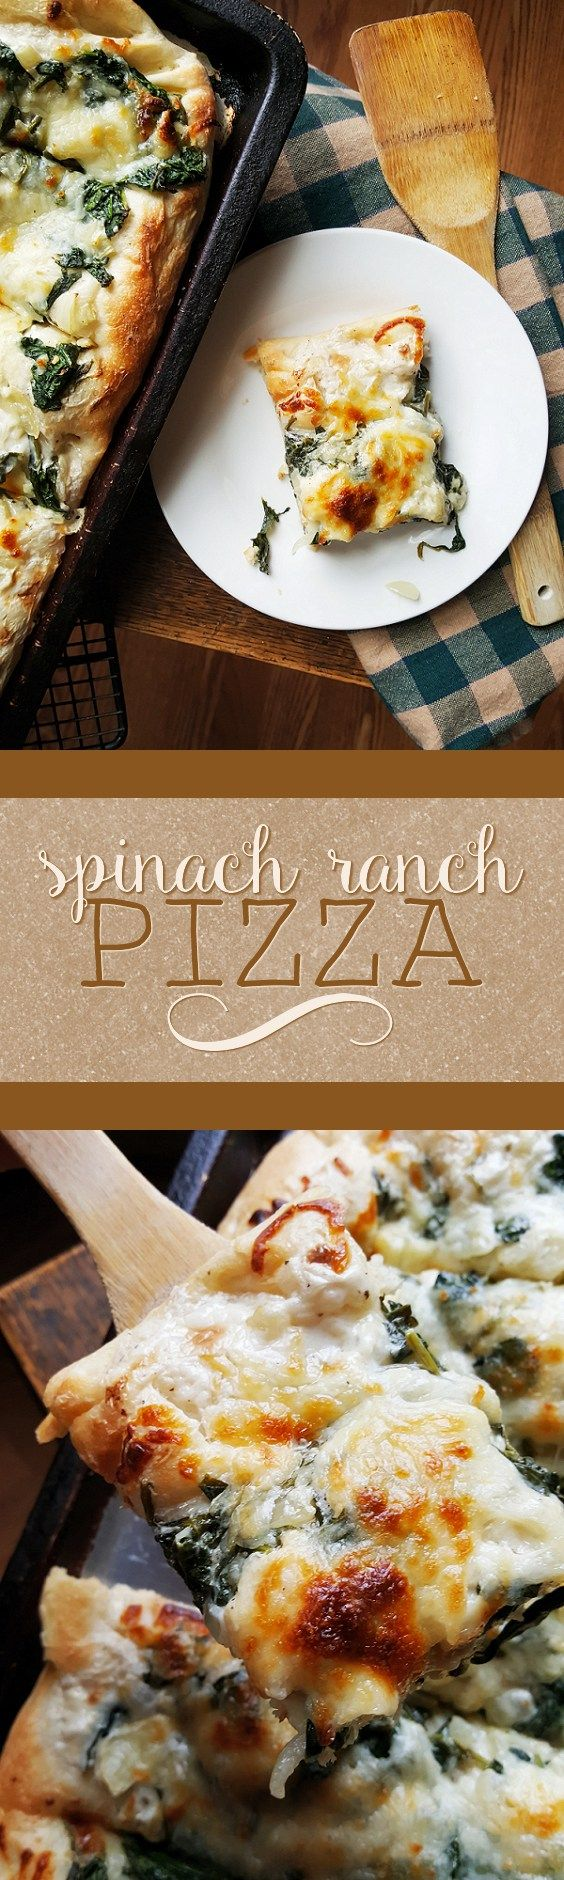 {Healthy, Vegan- and GF-adaptable} This spinach ranch pizza is one of my foolproof, go-to meals-- easy to make, it's a delicious hit that the whole family will love!